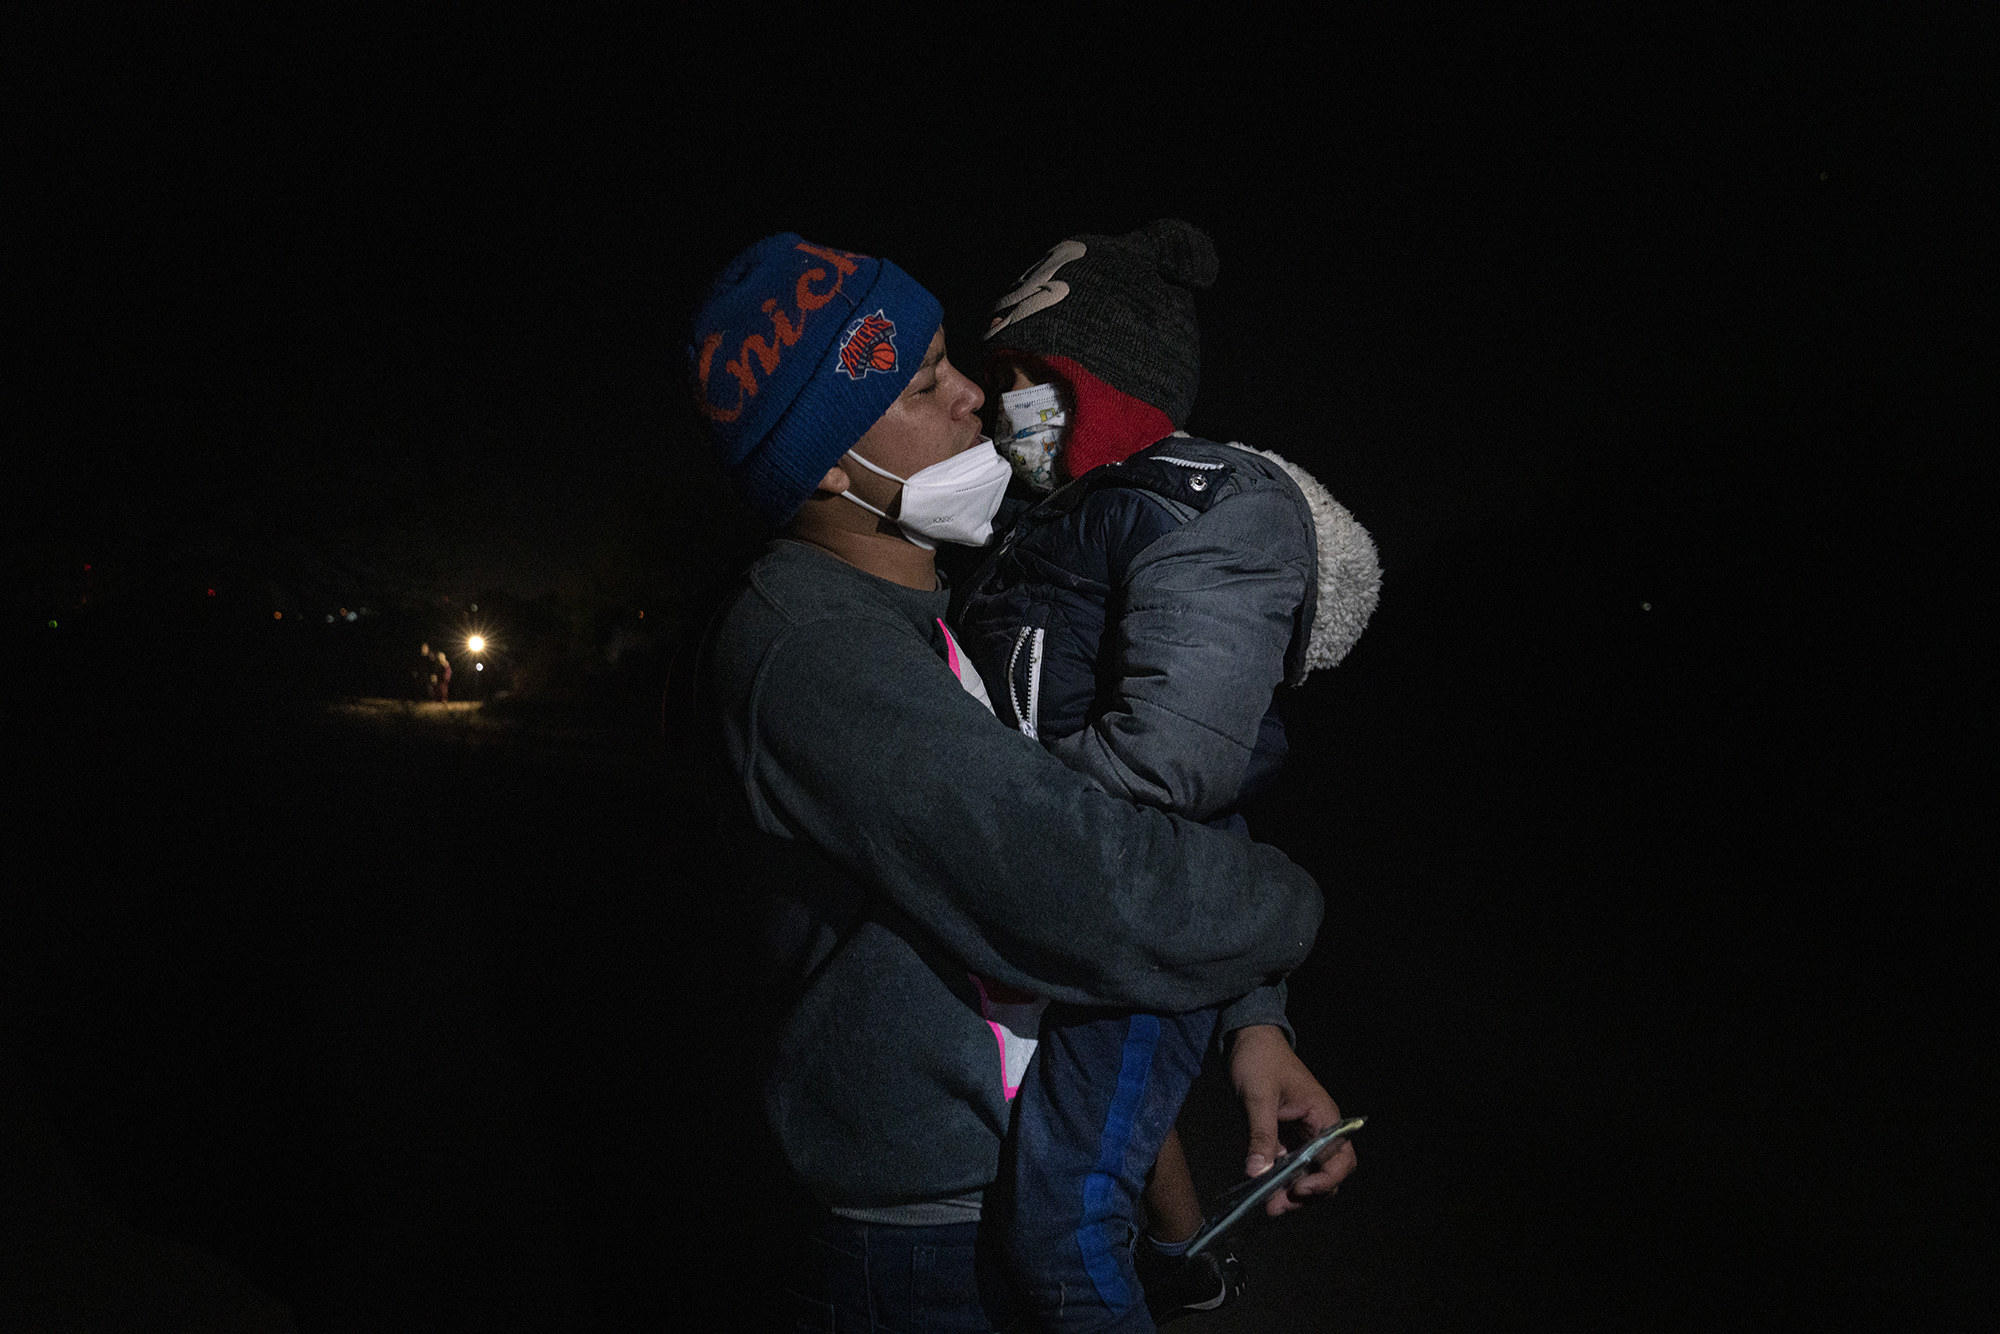 A father holds his son, both dressed in beanies, face masks, and warm clothing at night